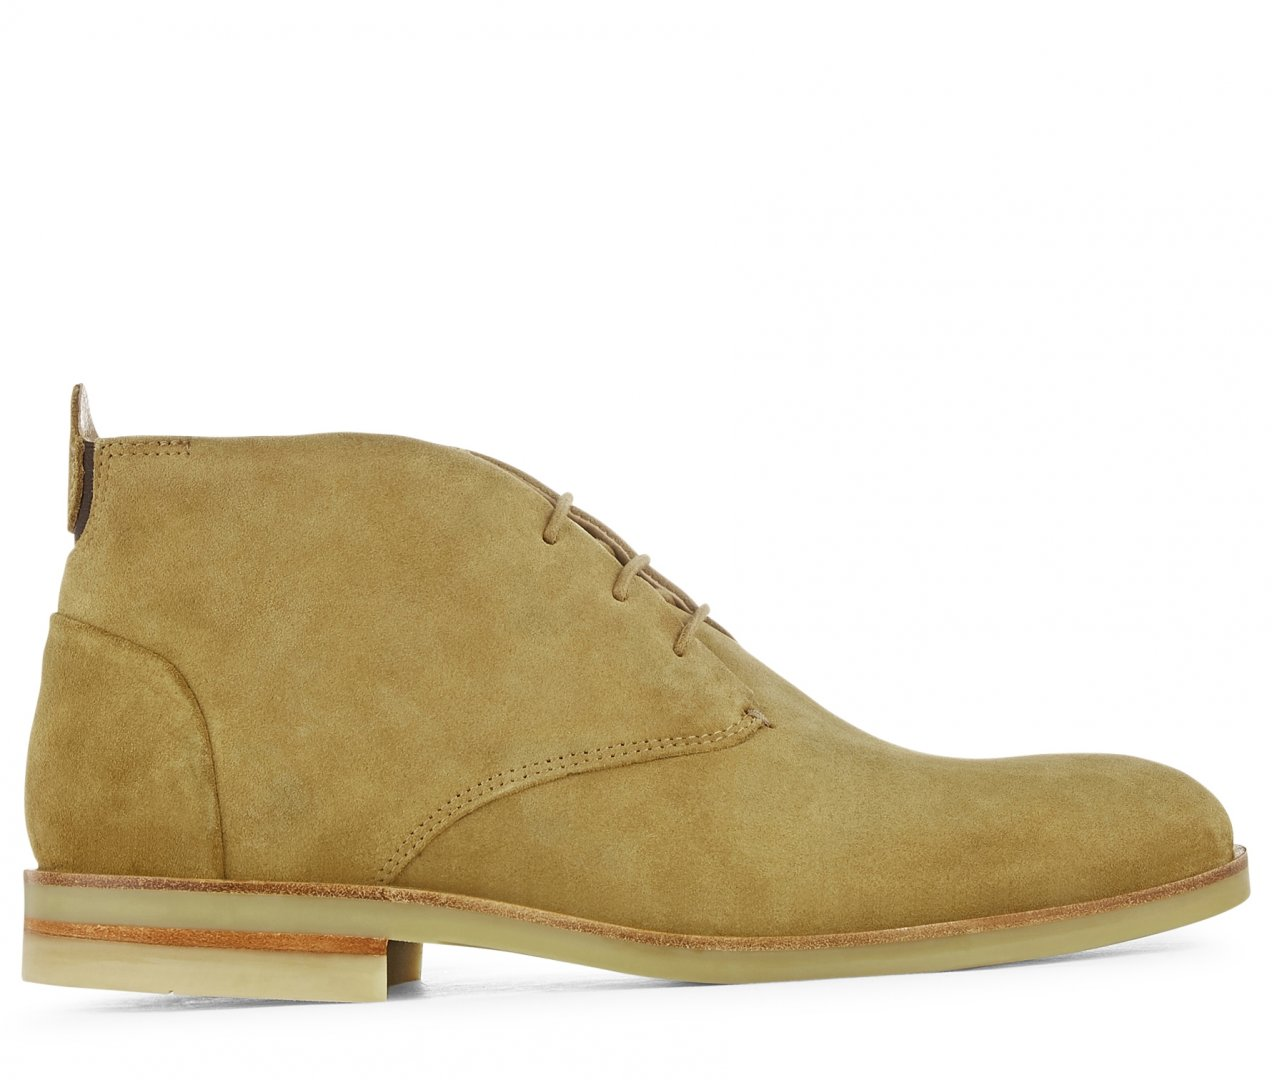 cdb2ee8a7e5 Bedlington Suede Camel Boot by Hudson Shoes — Thread